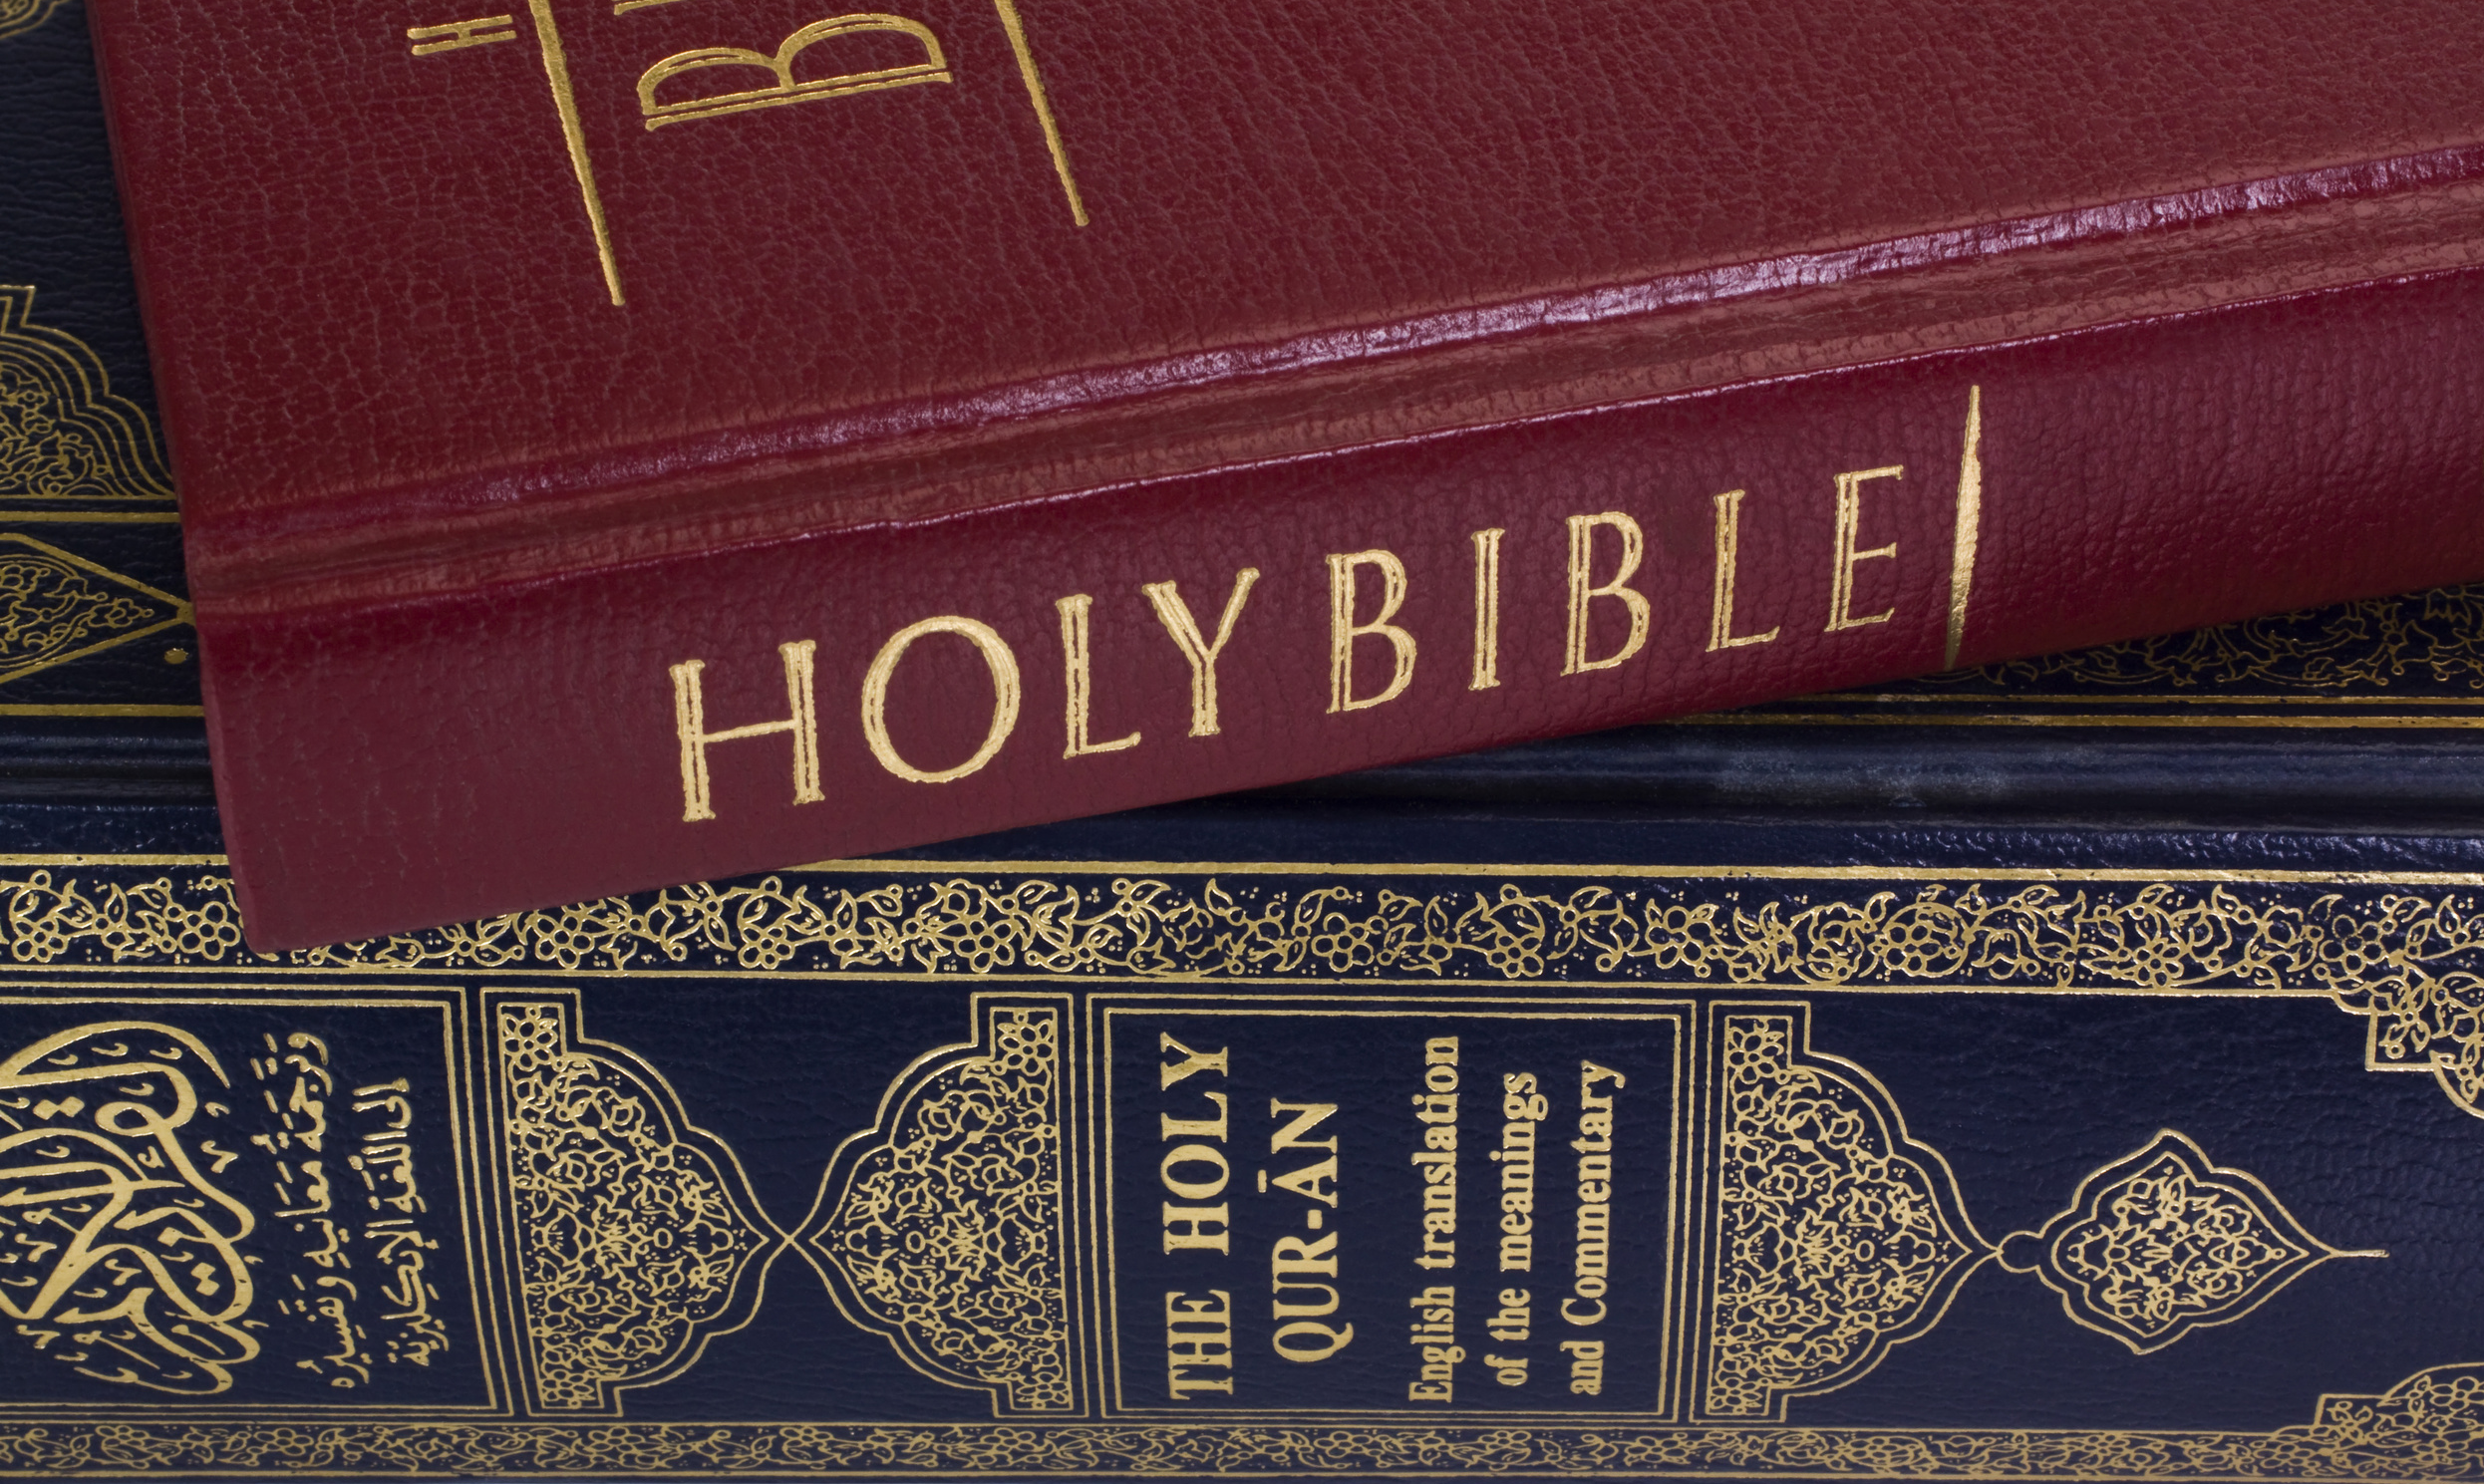 Many would purport that these two books describe the same God. But then one would have to question why Christianity and Islam have existed as two separate religions for centuries. There MUST be a difference...and it MUST be extremely important.(Image: Imagedb)